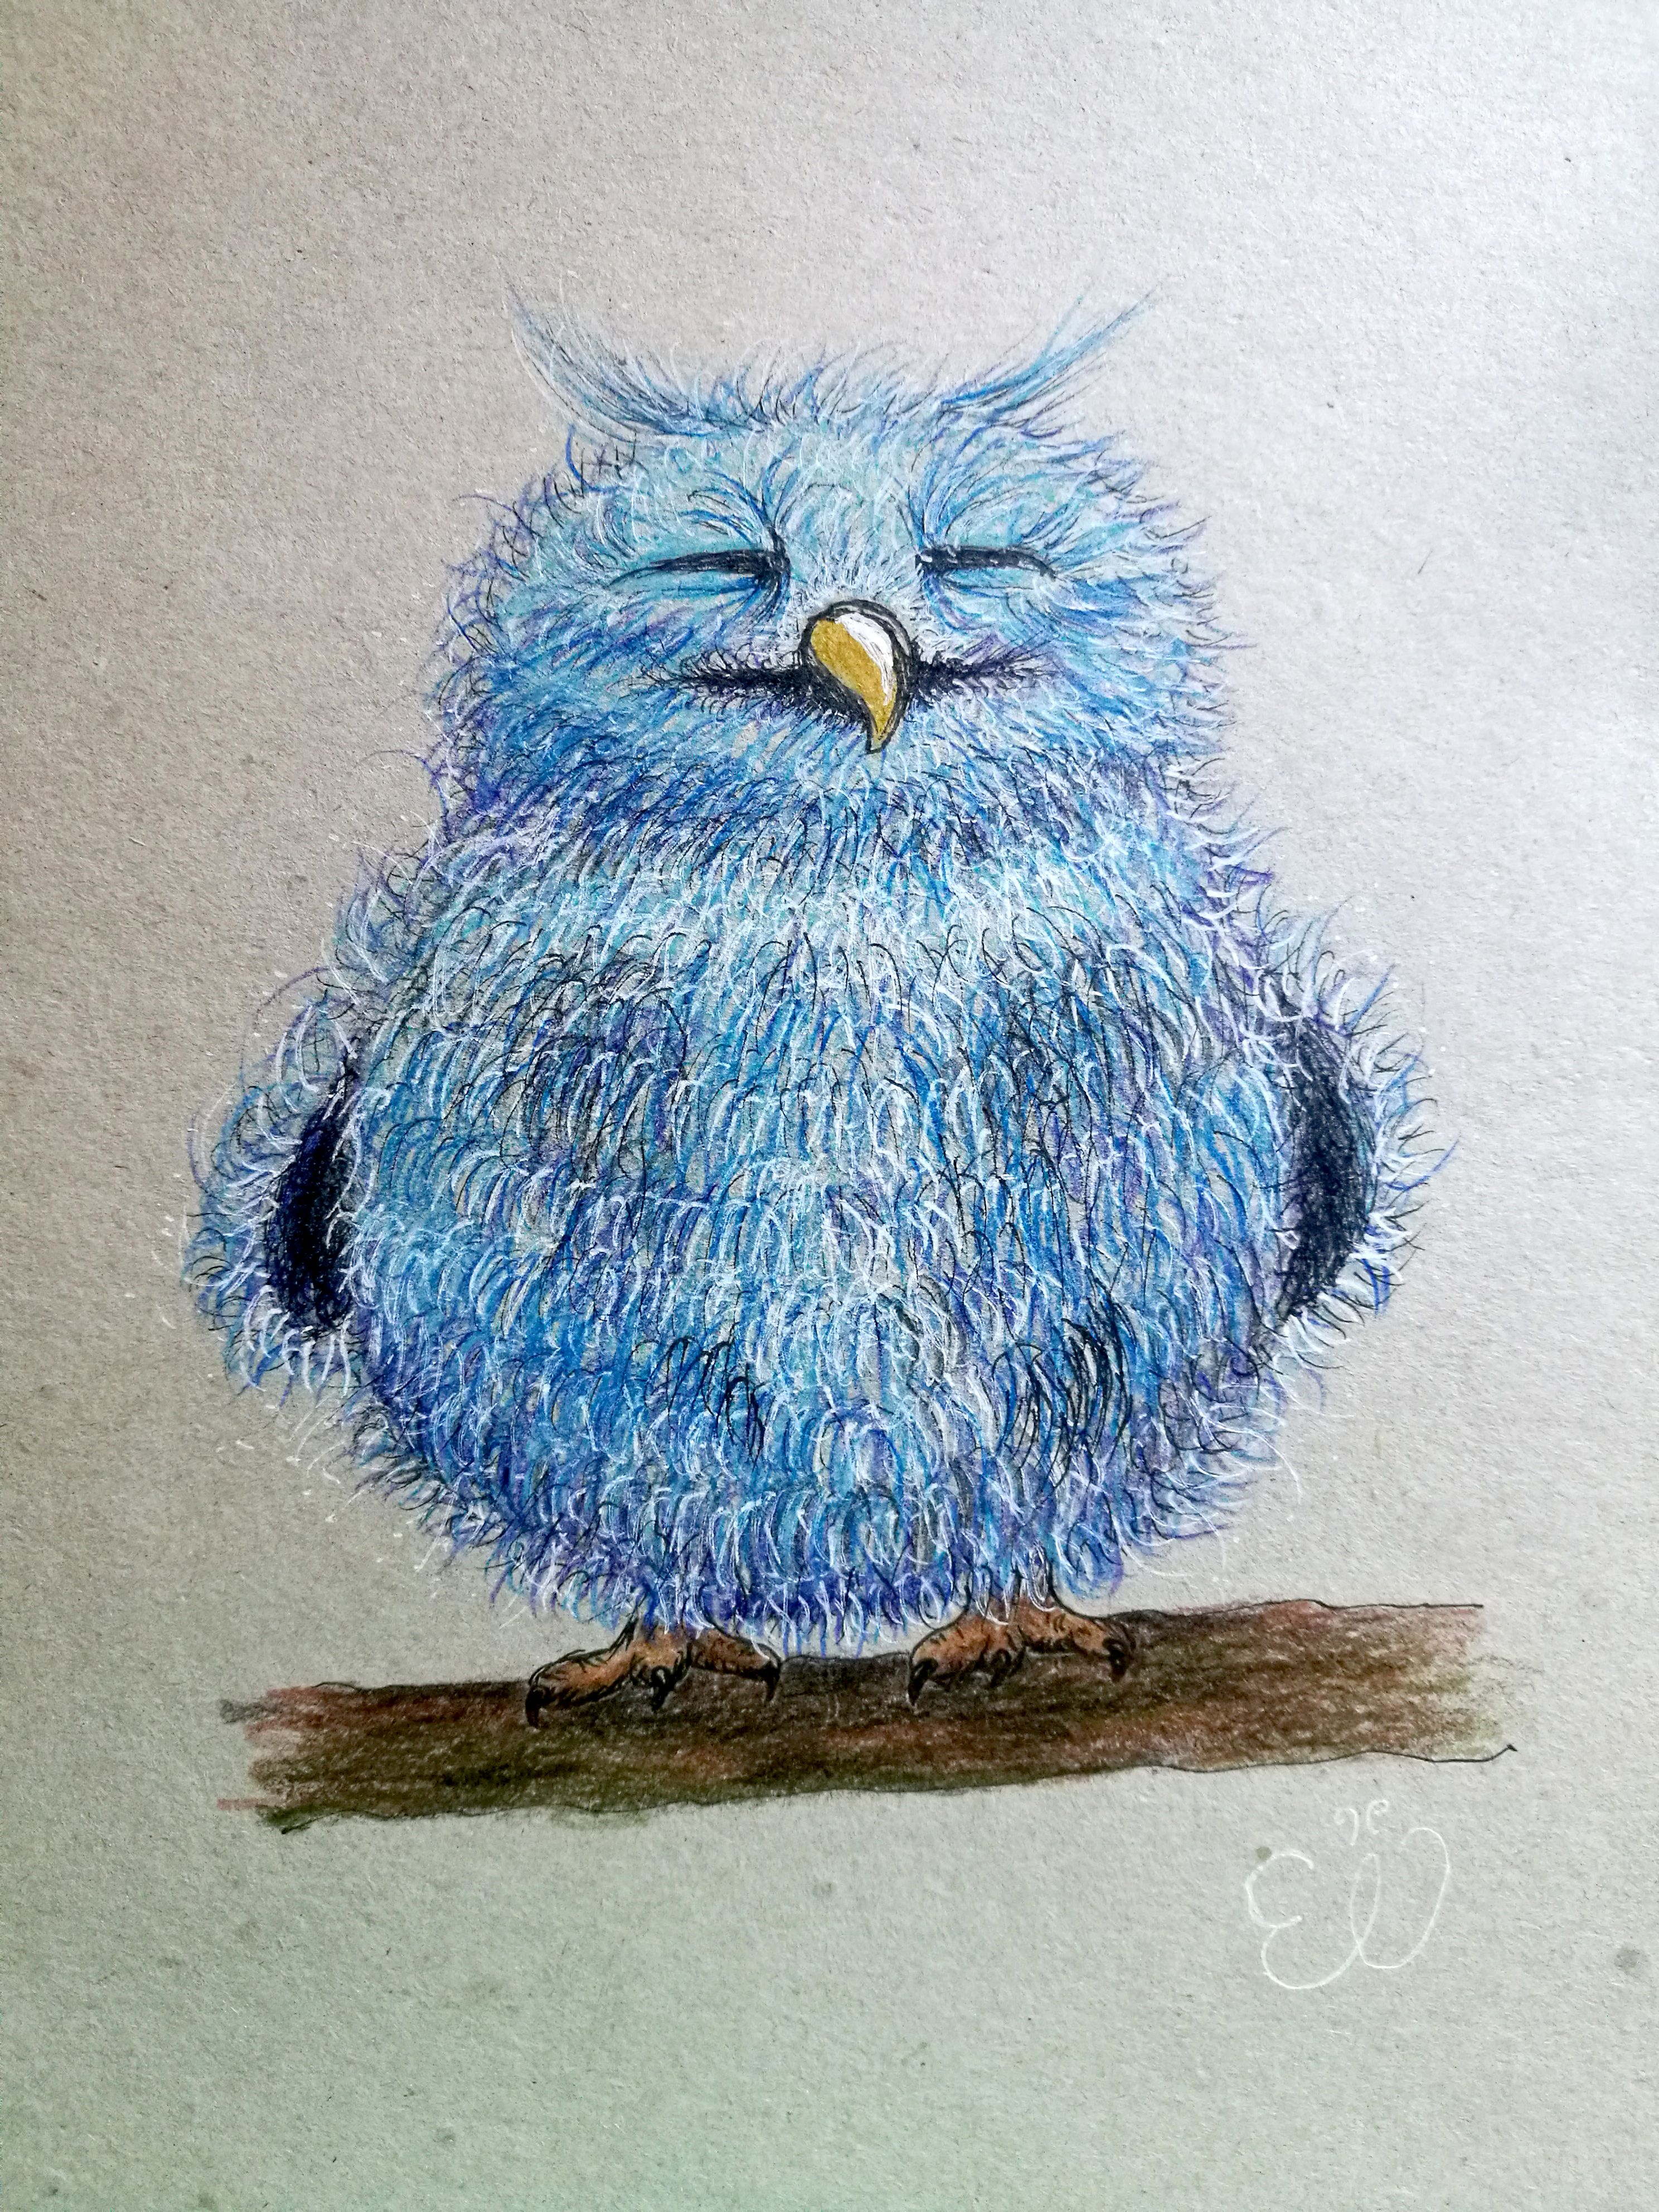 How to draw A CUTE FLUFFY OWL   youtube BlueBirdArtChallenge ...